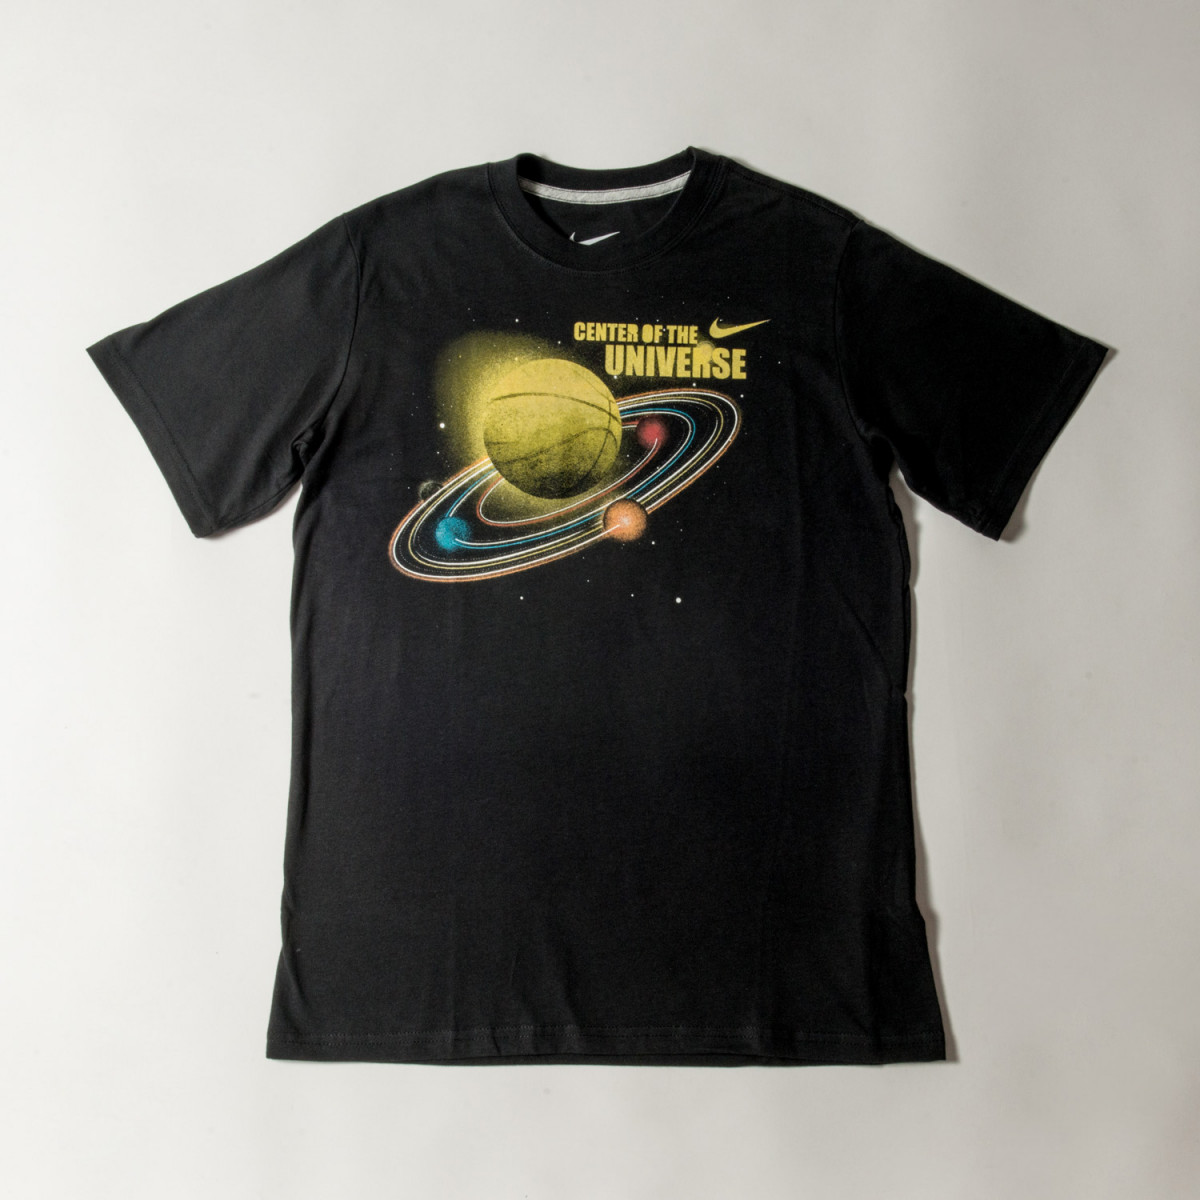 REMERA NIKE NINO SSCENTER OF THE UNIVERSE